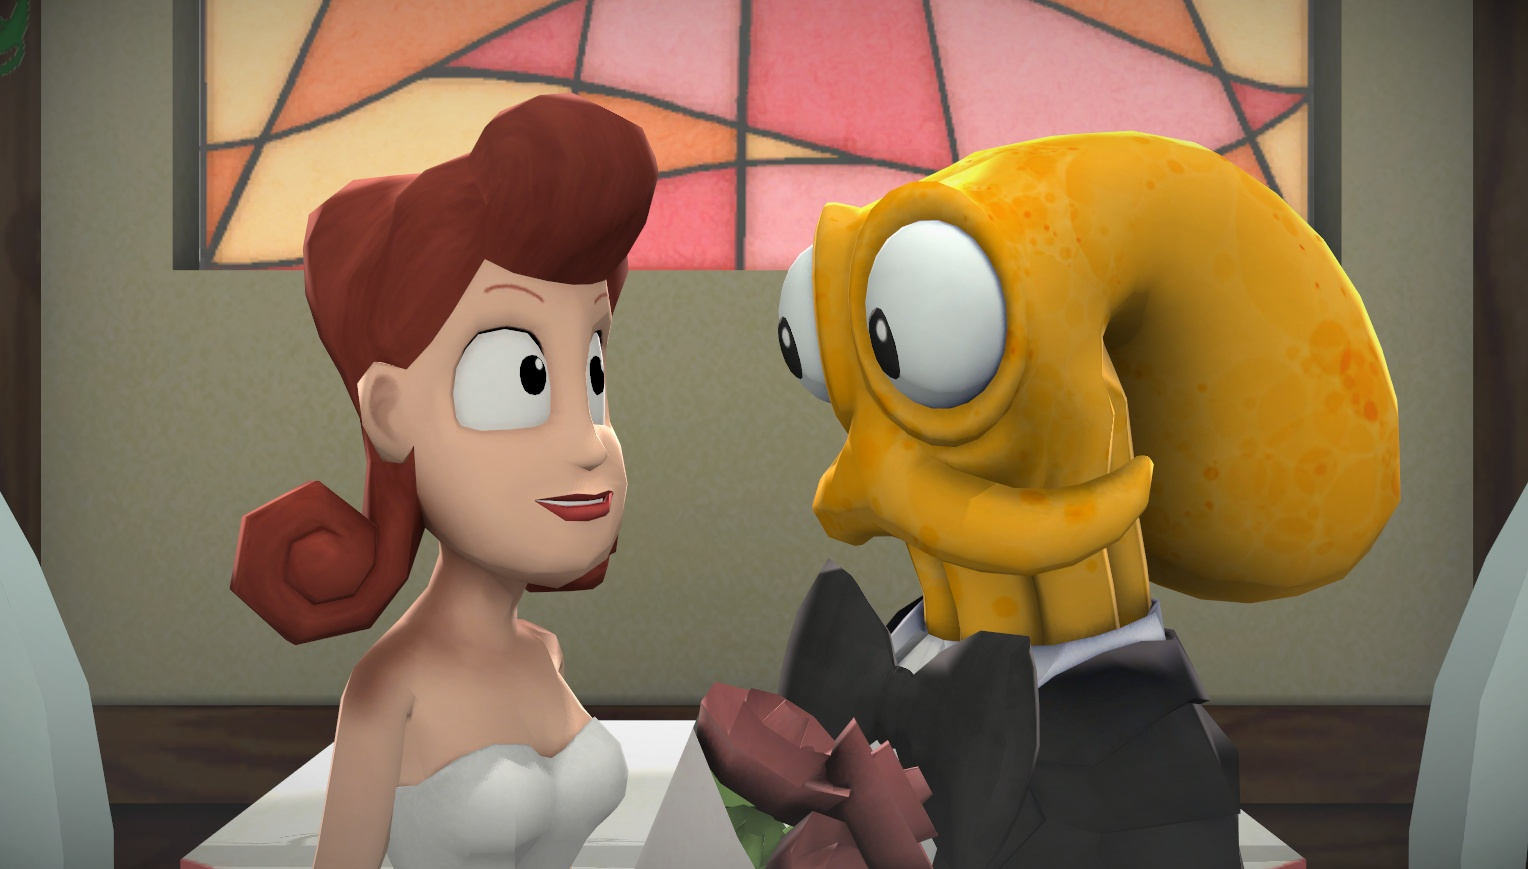 Octodad: Dadliest Catch PROPHET Torrent Free Download